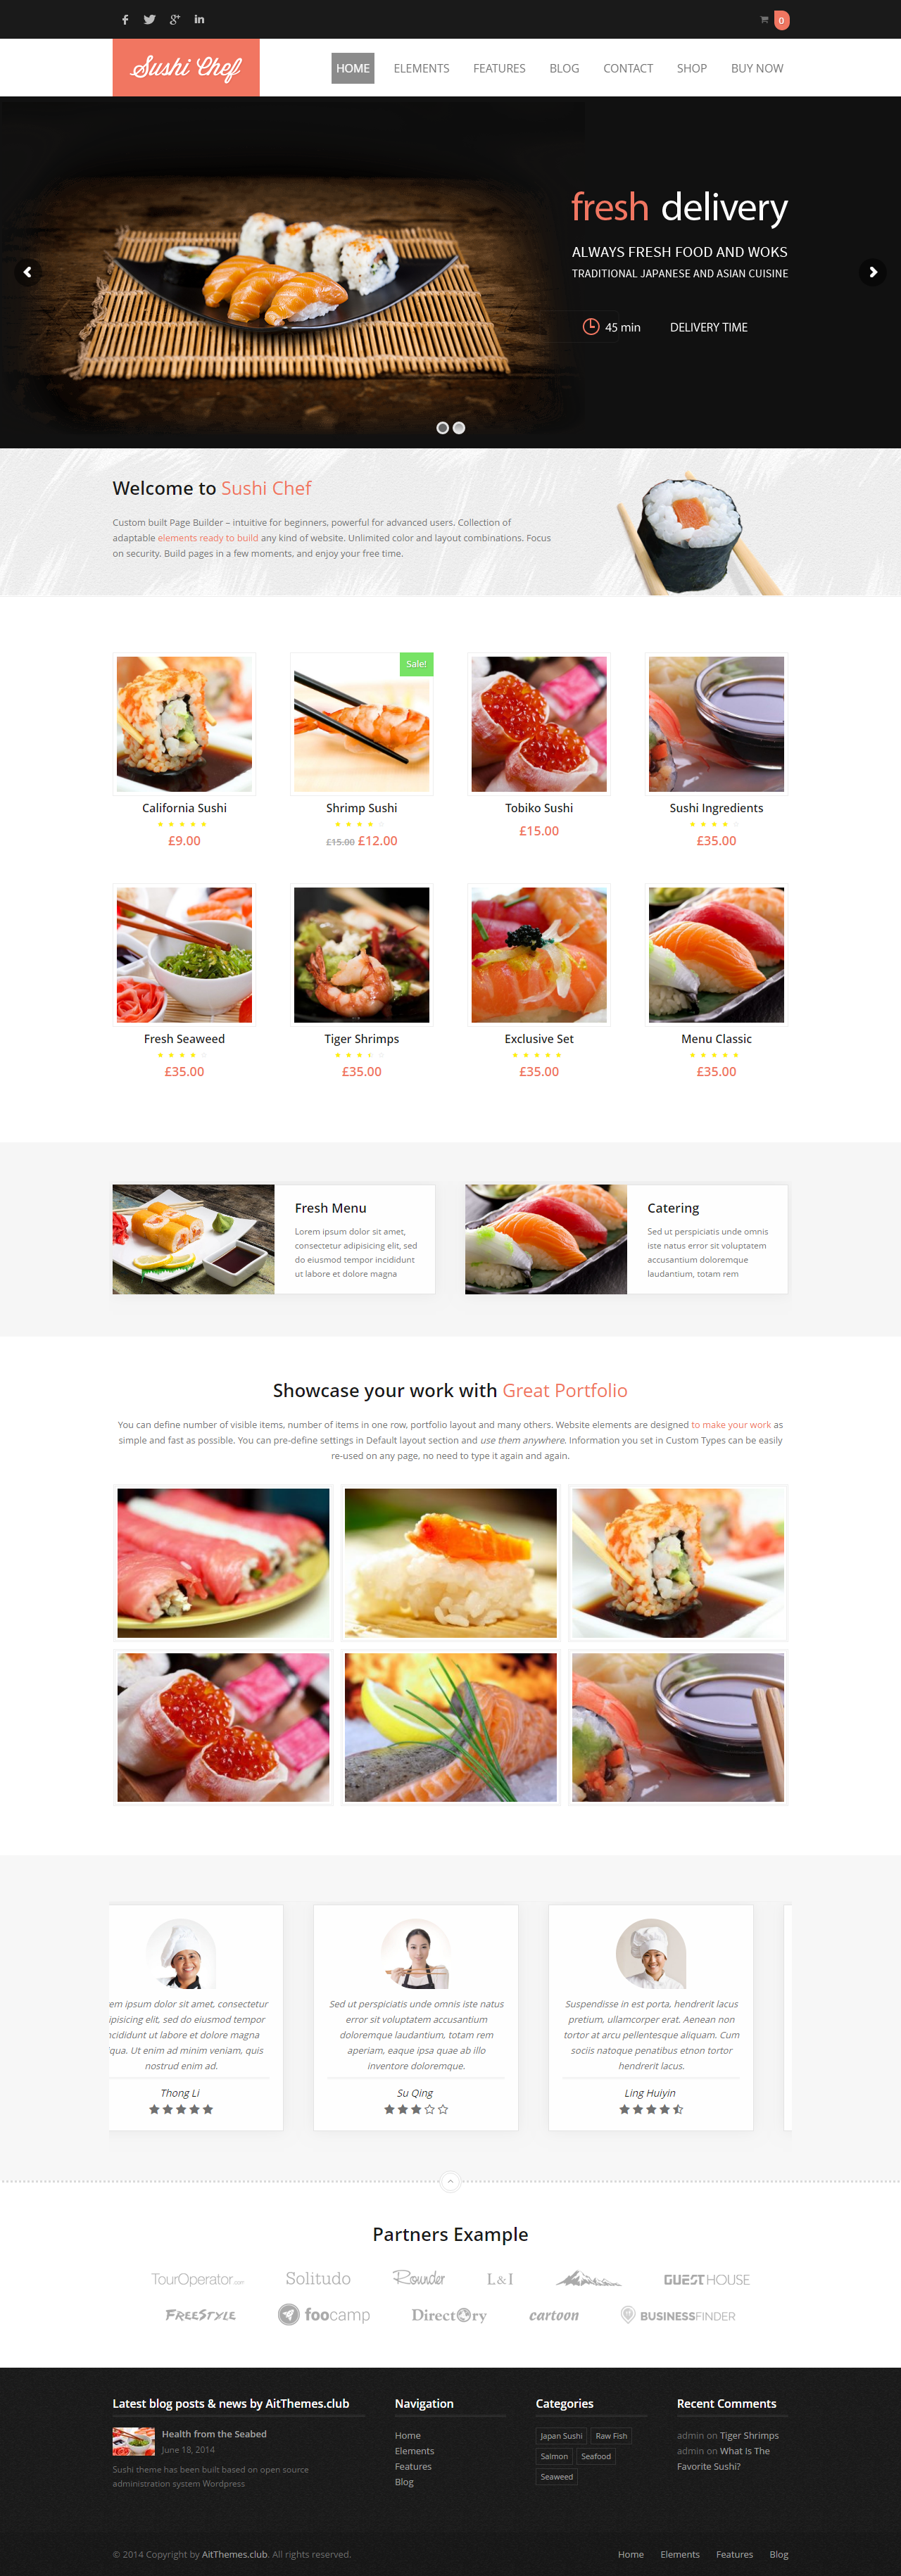 web design services in pune Web Design Services in Pune food delivery wordpress theme 2